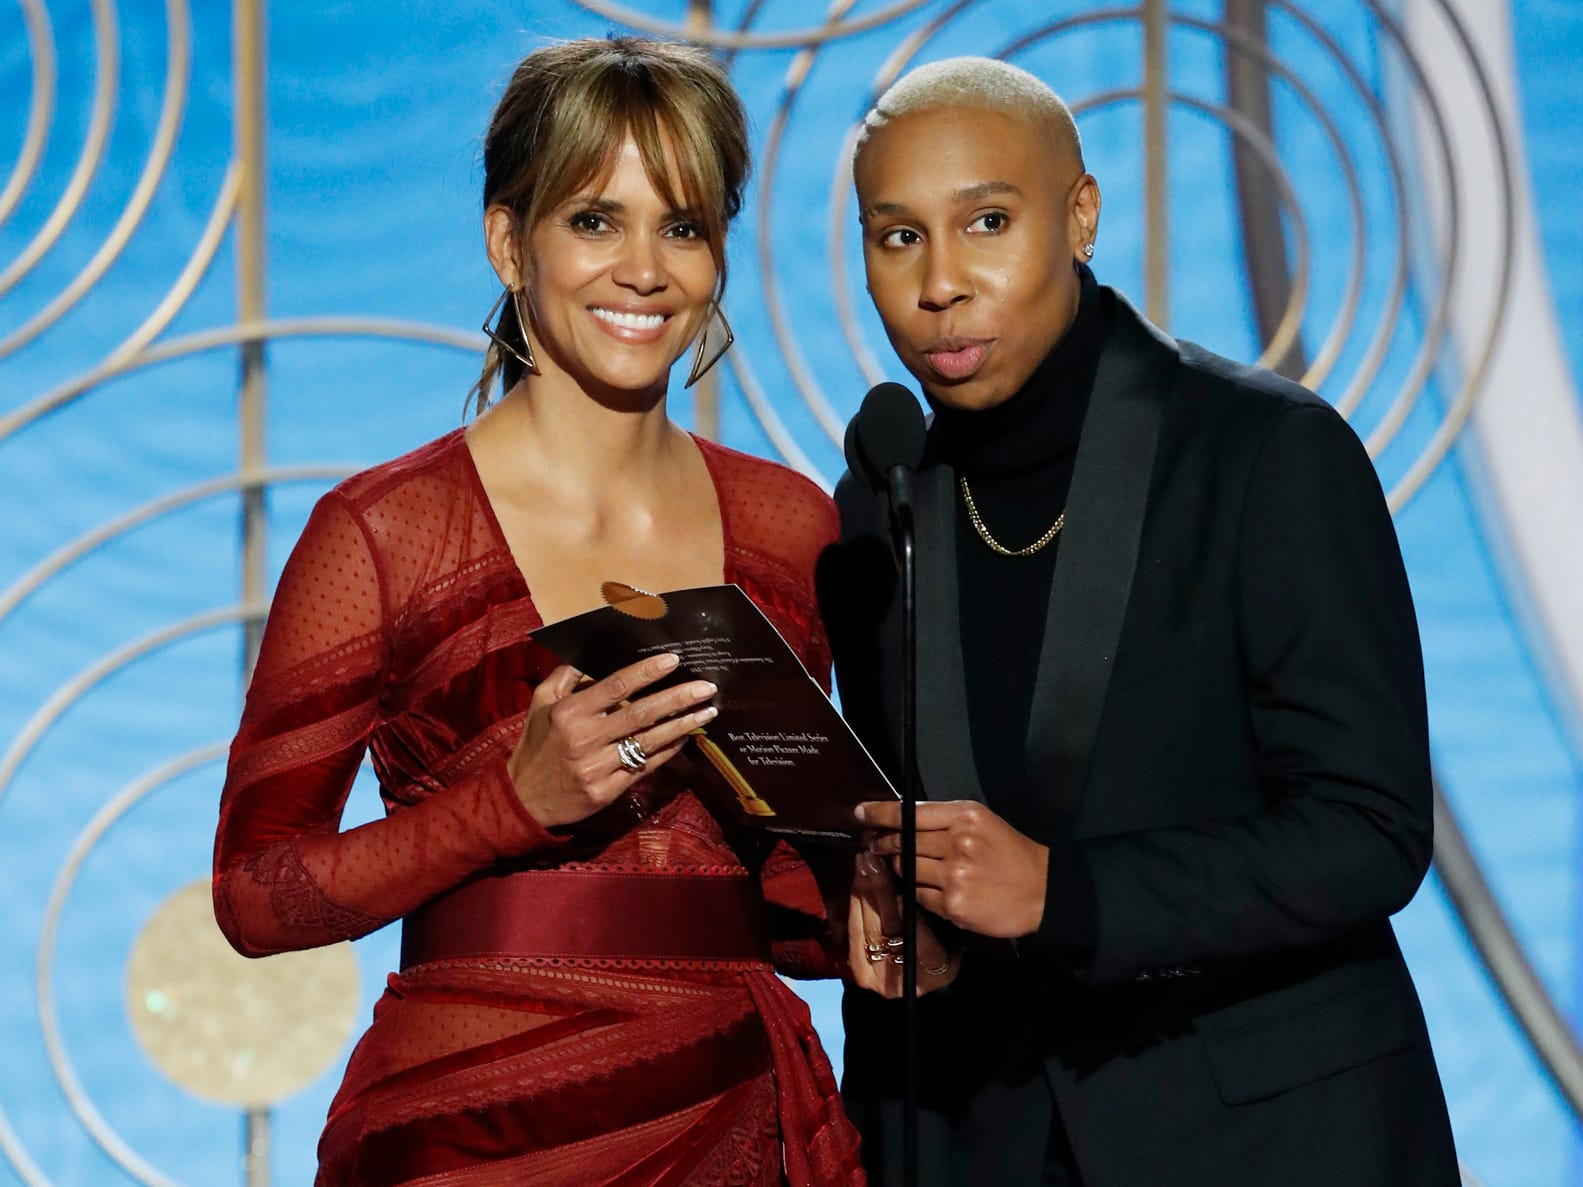 Halle Berry and Lena Waithe present during the 76th Golden Globe Awards.